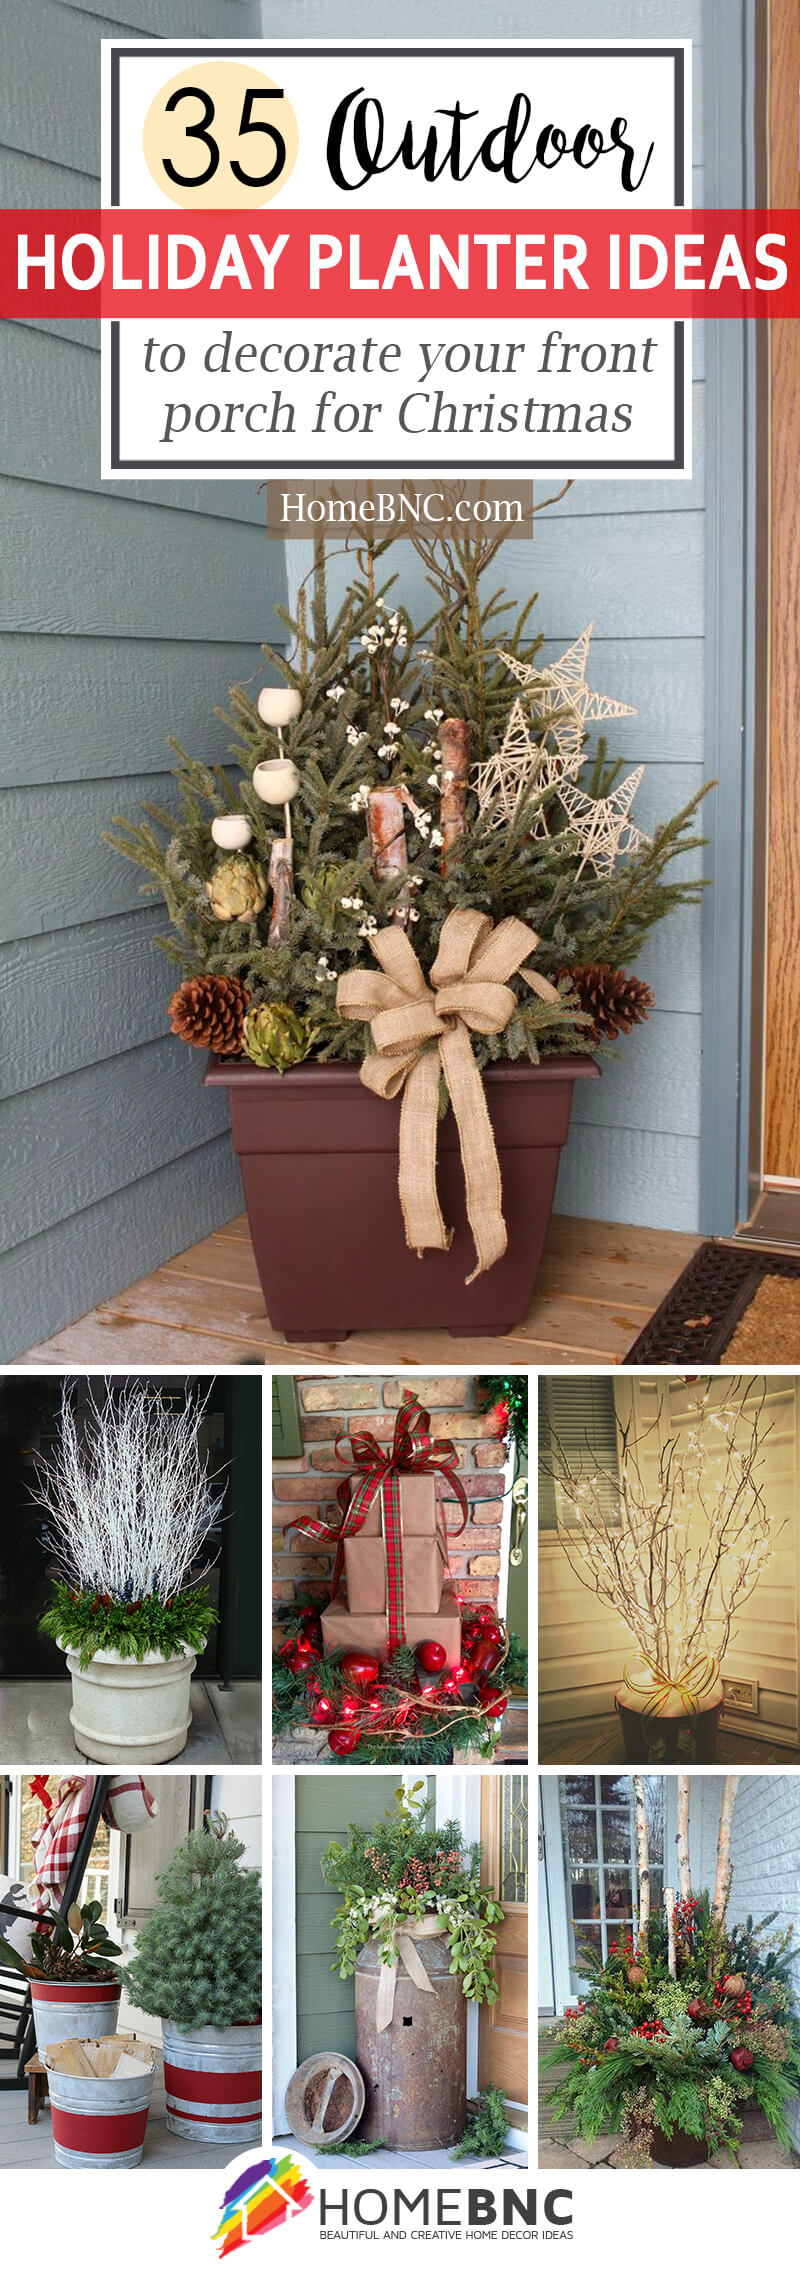 Outdoor Holiday Planter Design Ideas